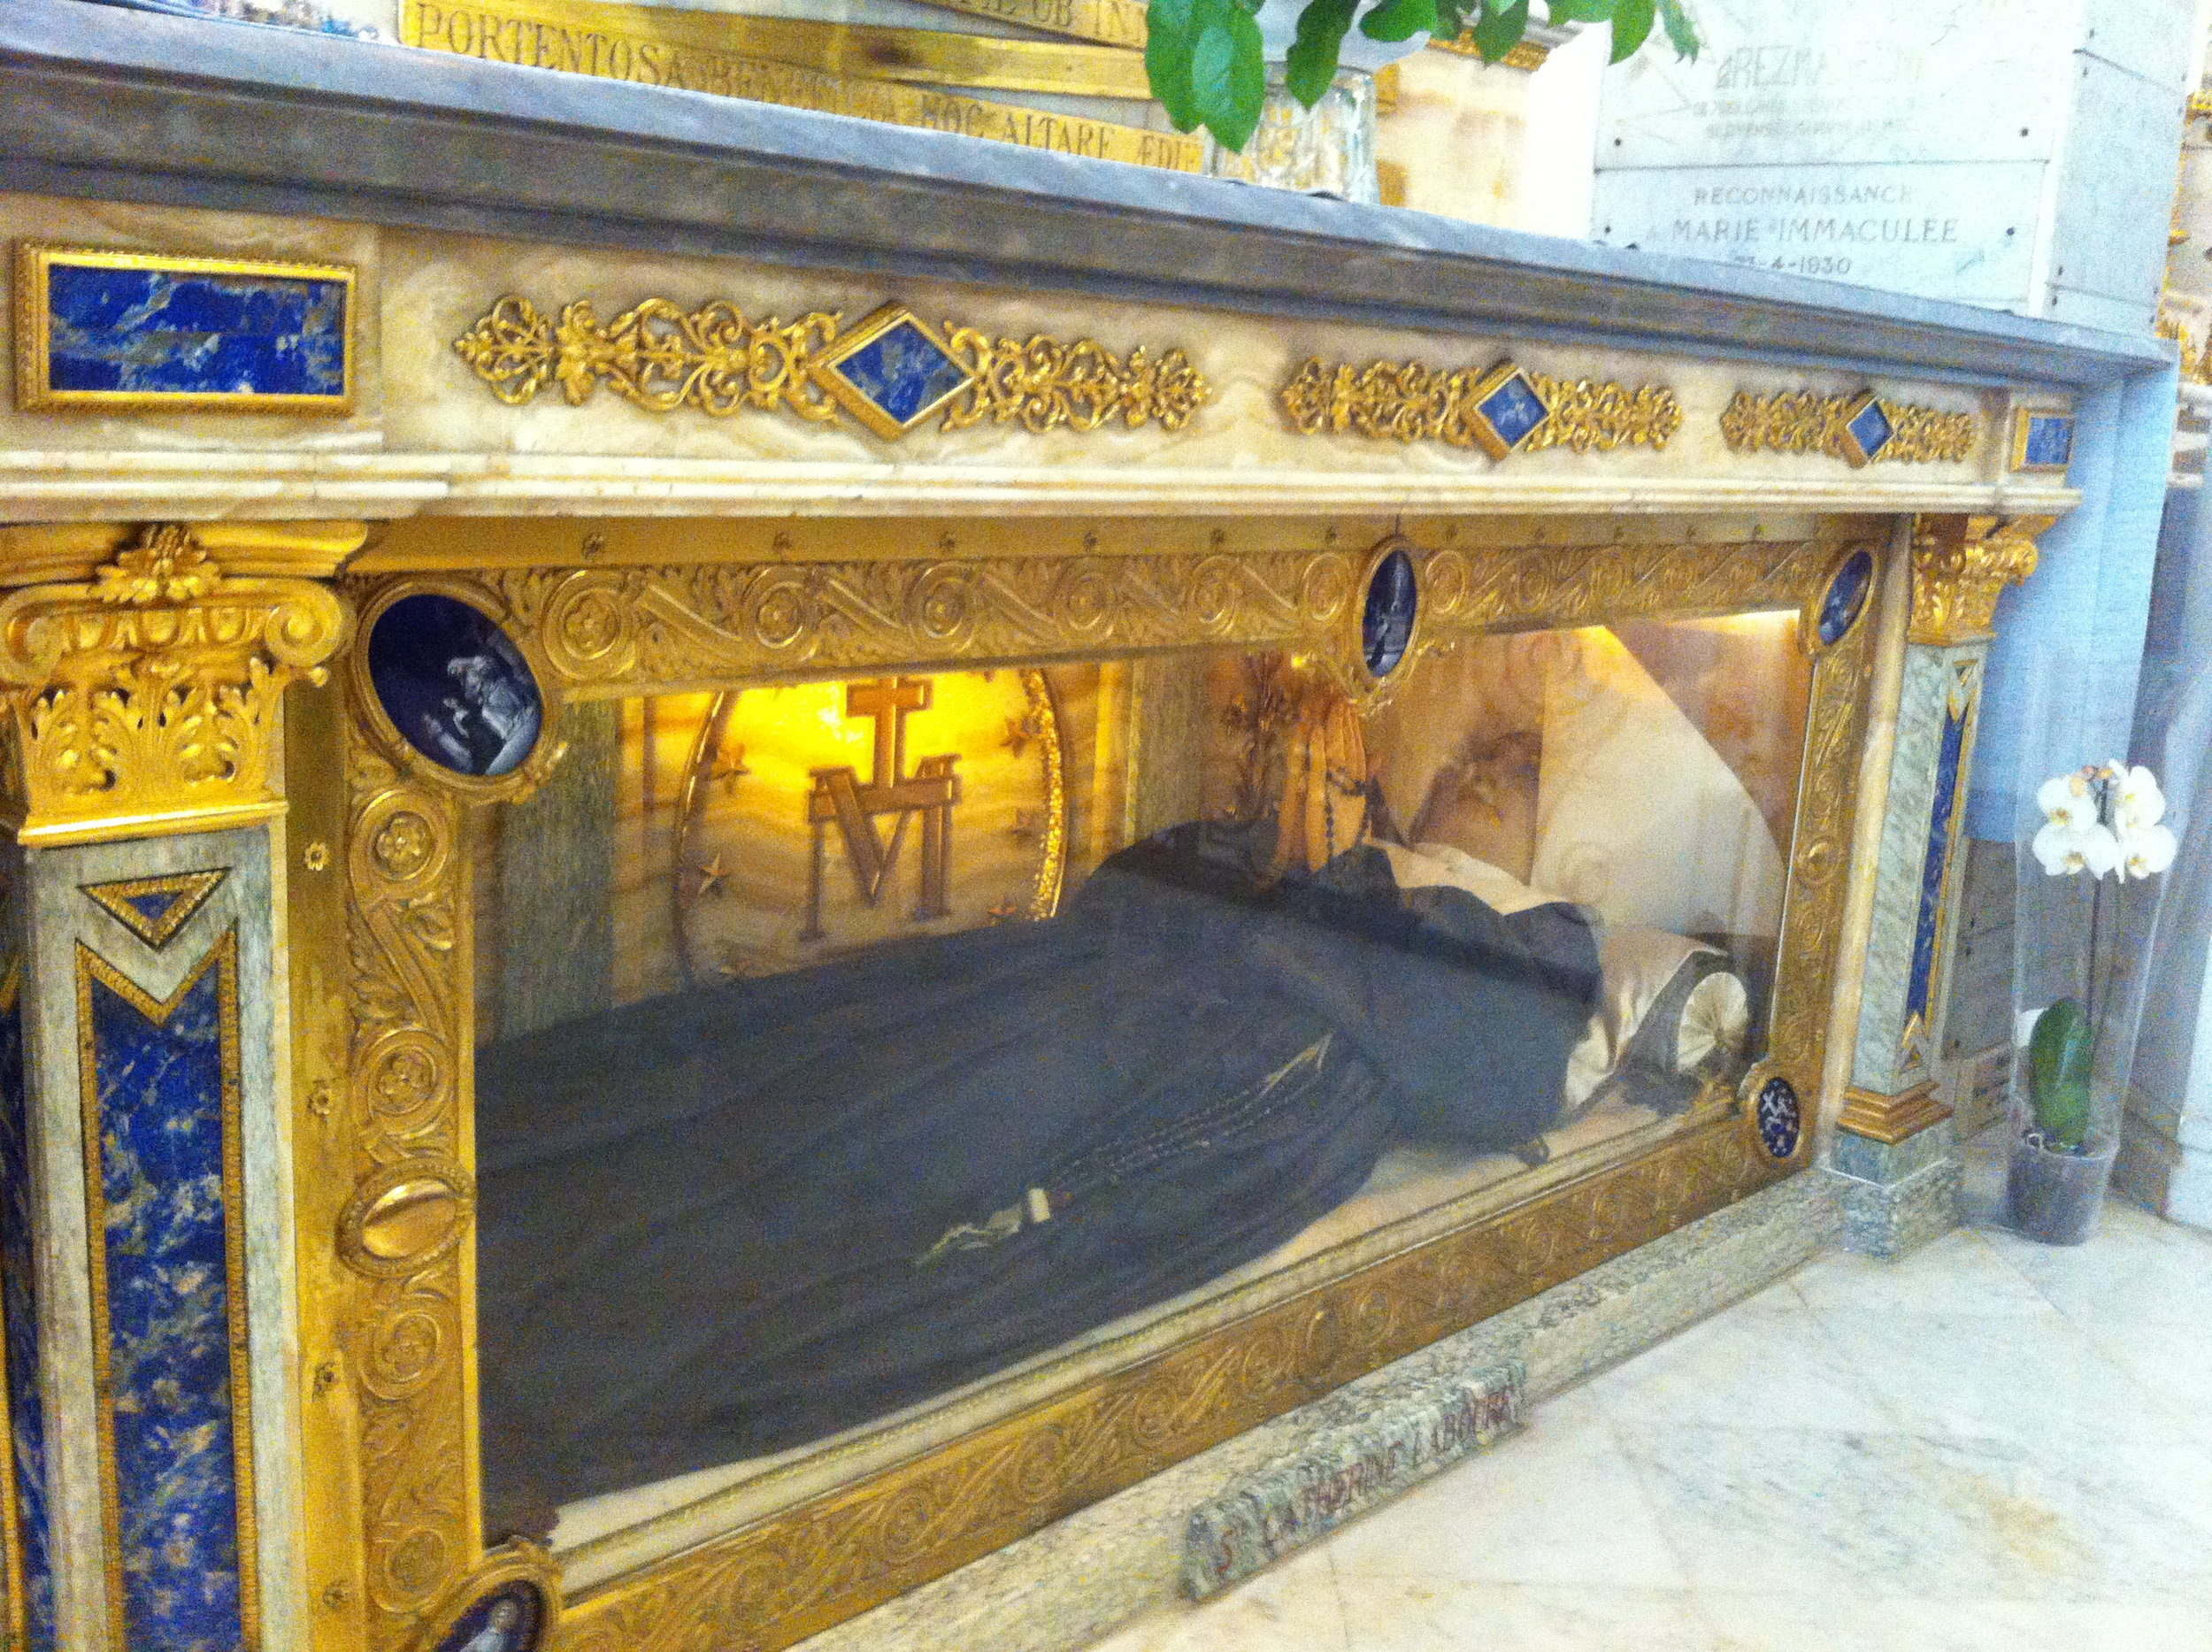 The incorrupt body of St. Catherine Labouré in the Chapel of Our Lady of the Miraculous Medal, Paris, France